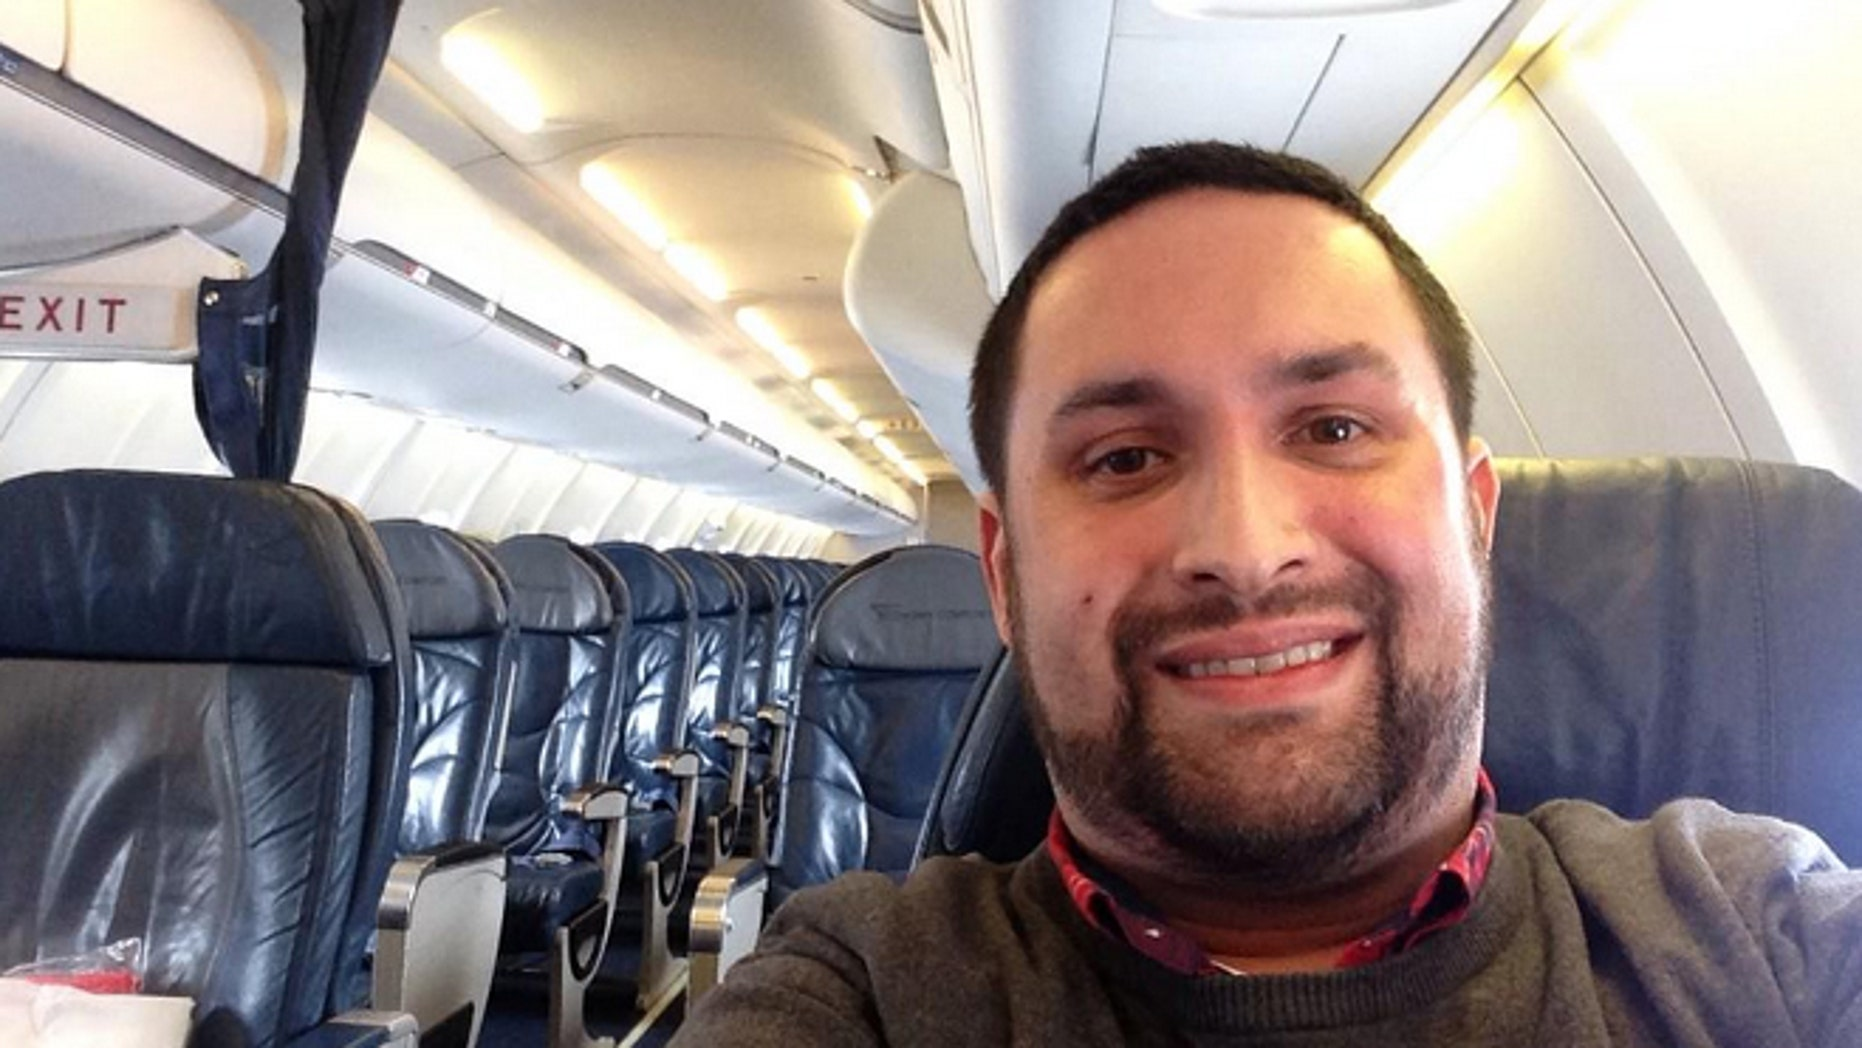 Flying solo: Chris O'Leary snaps a selfie on board his empty flight.